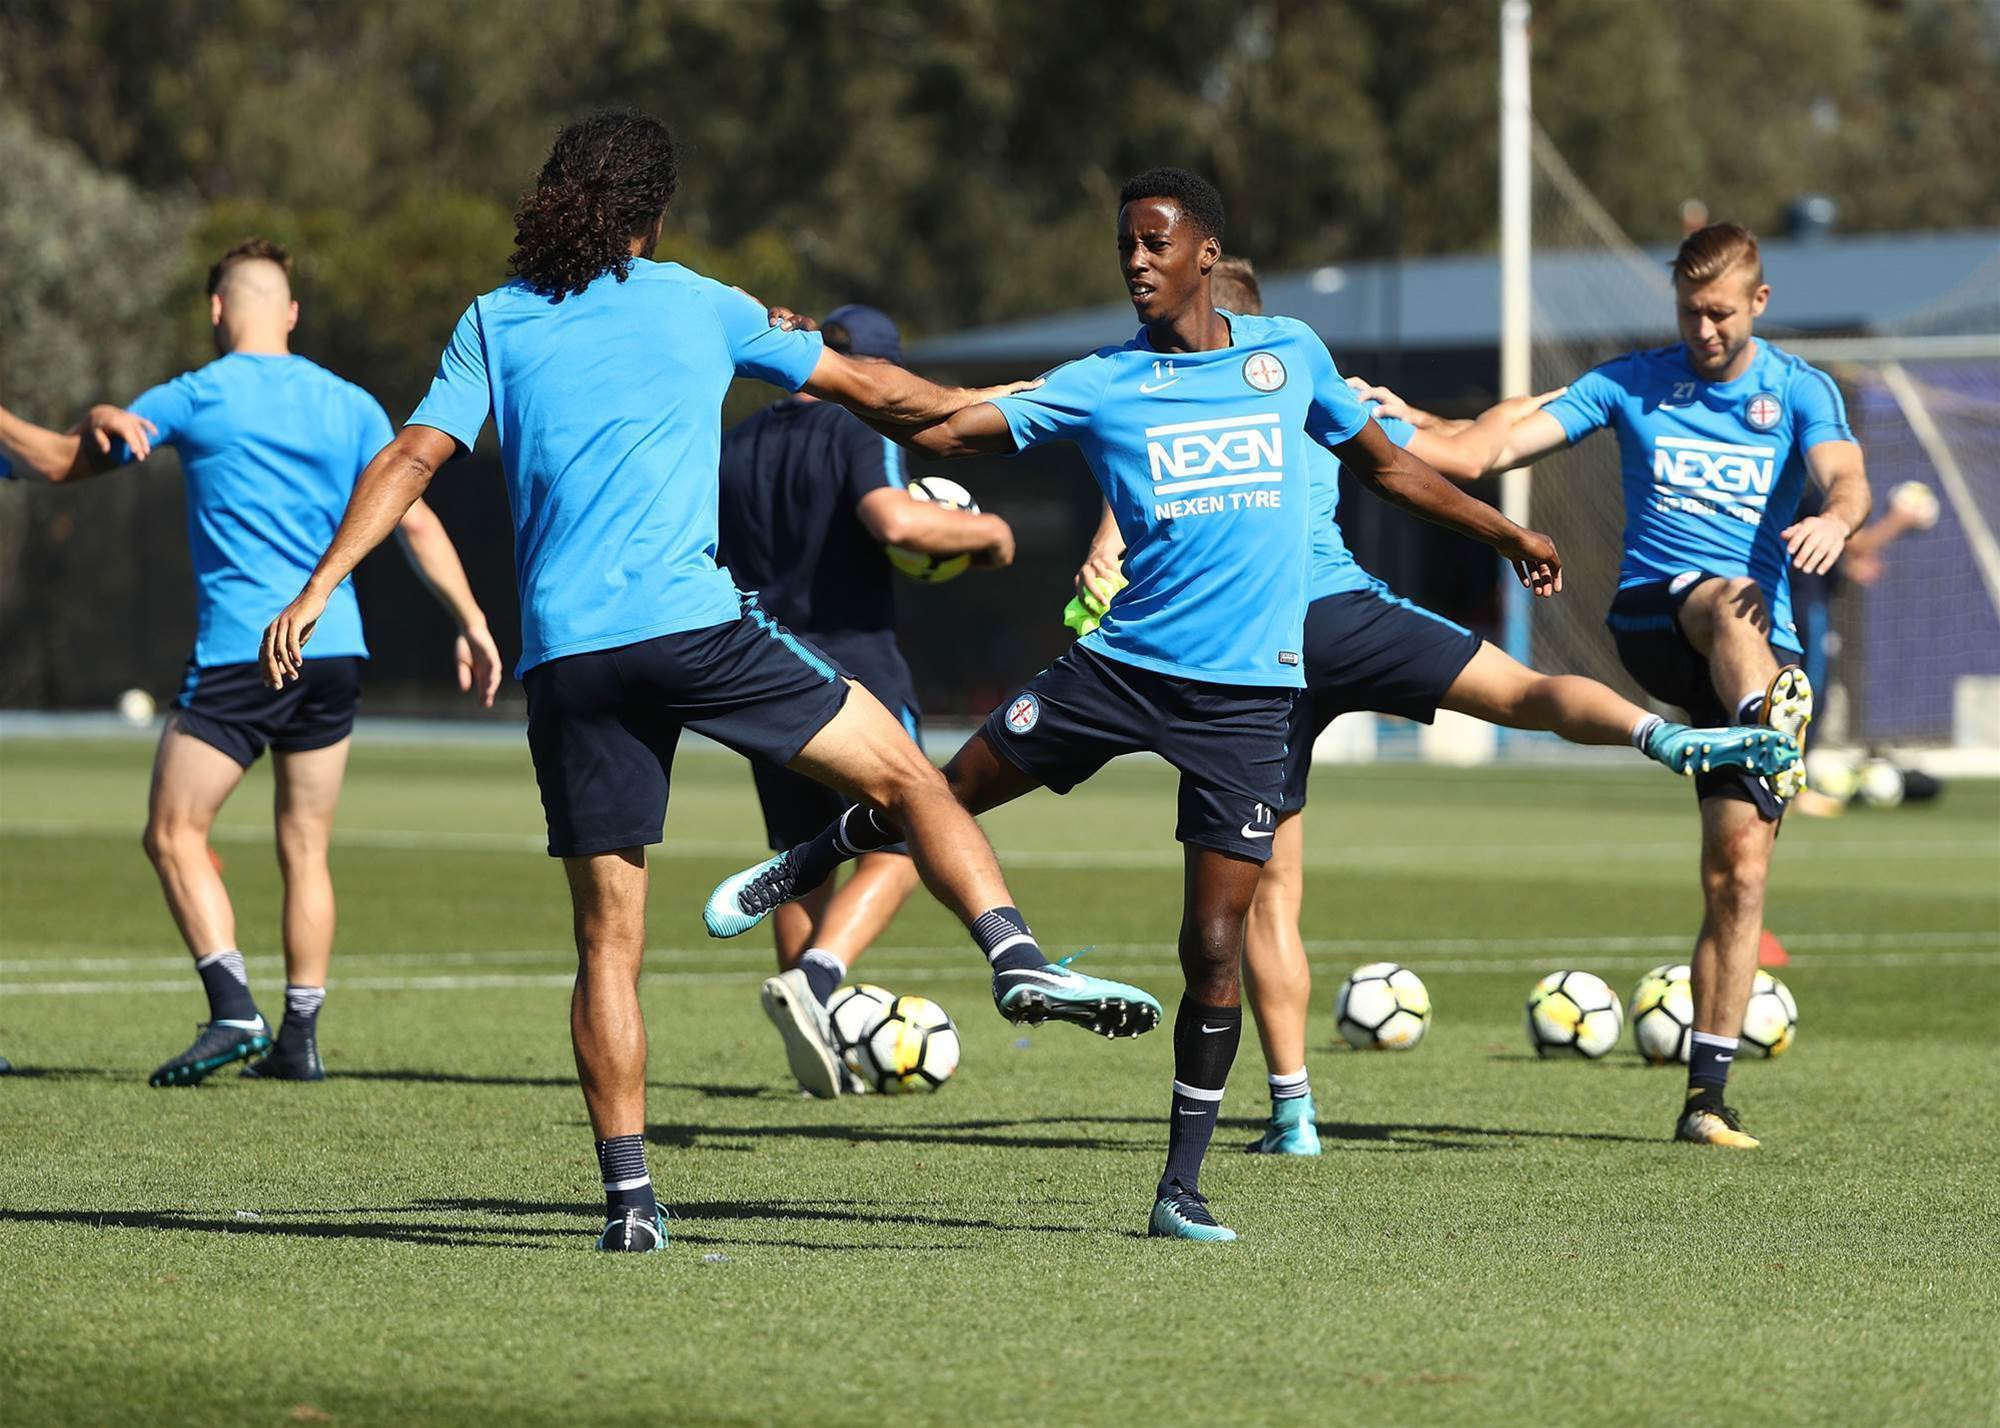 City training pic special